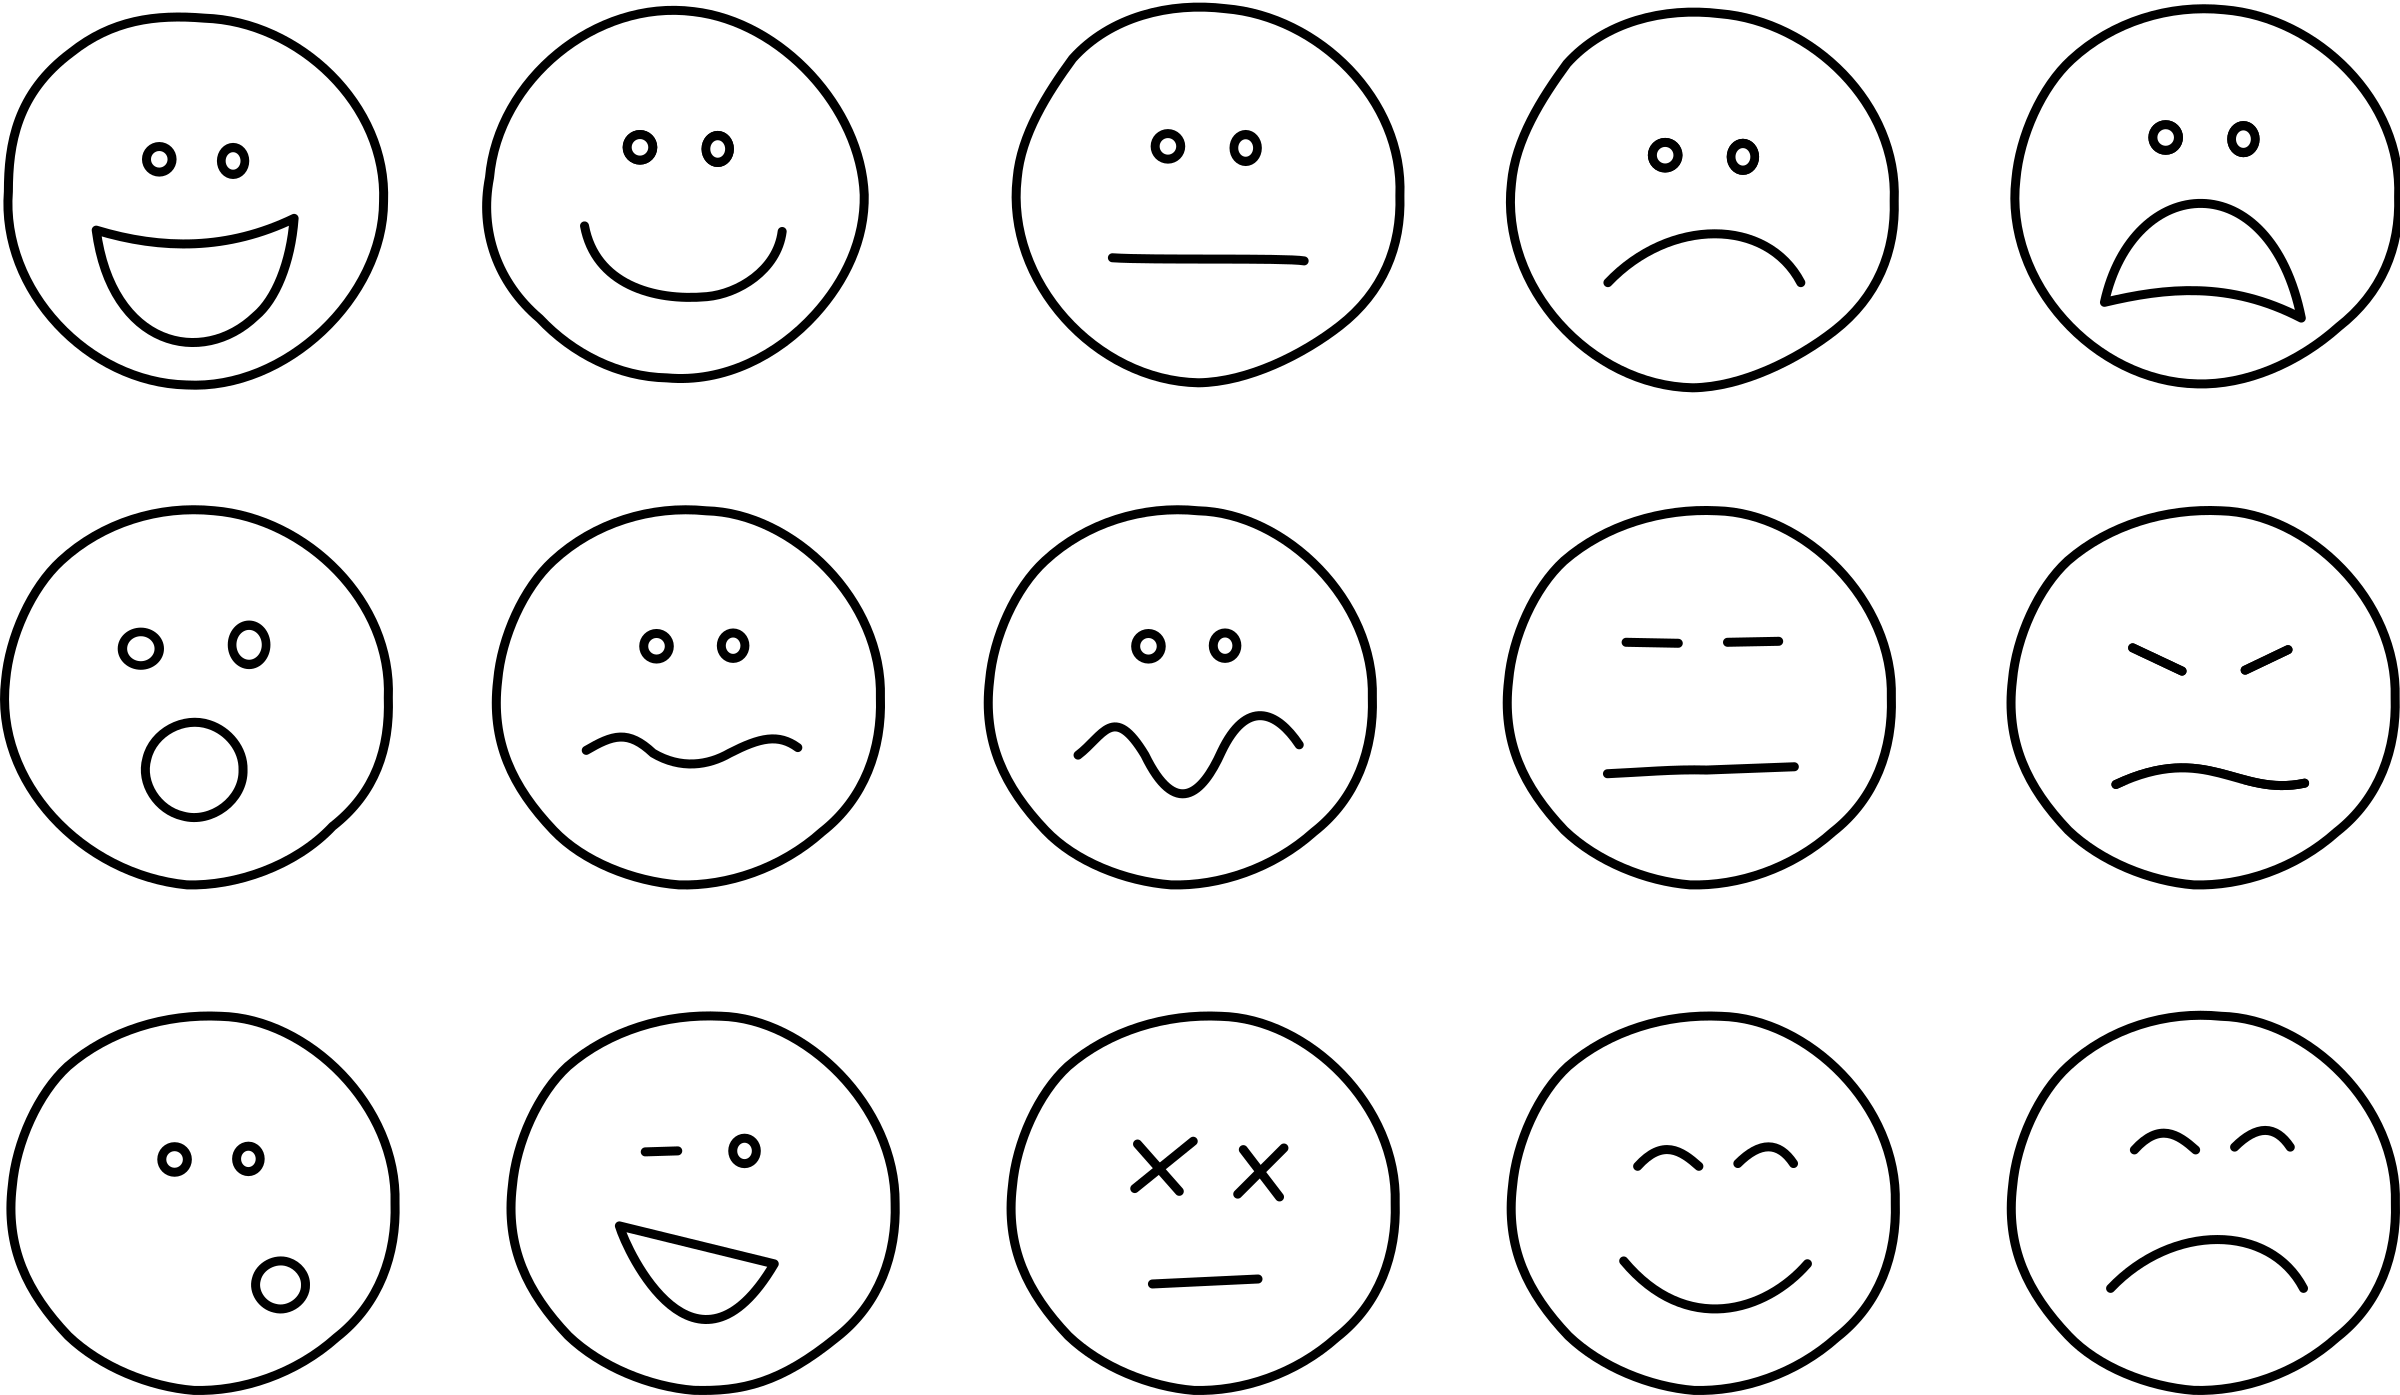 Face big image png. Smiley clipart facial expression